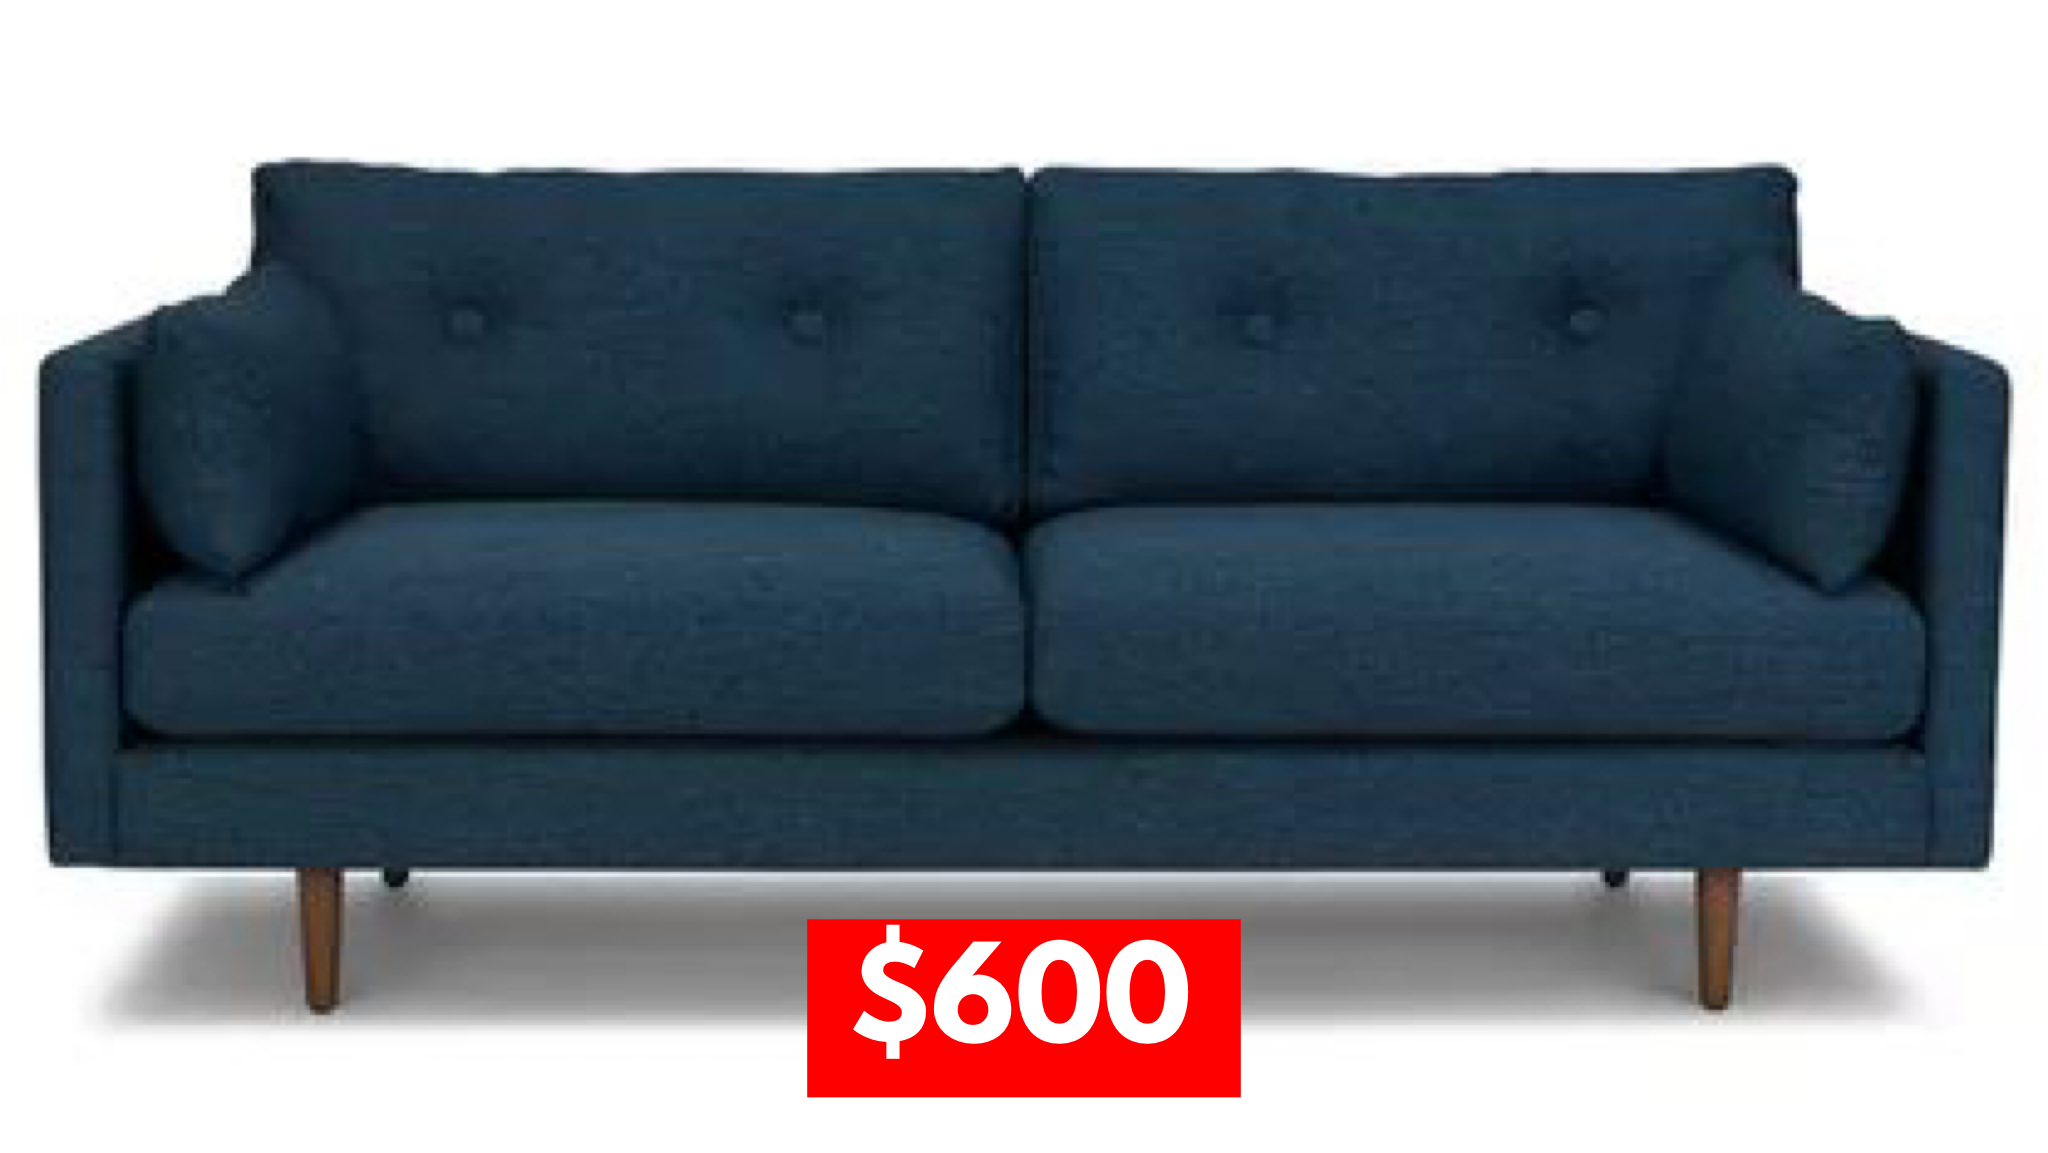 Contemporary Sofas Sectionals Sofa Beds We Have On Our Inventory Of New If You Would Like To Purchase A Before Next